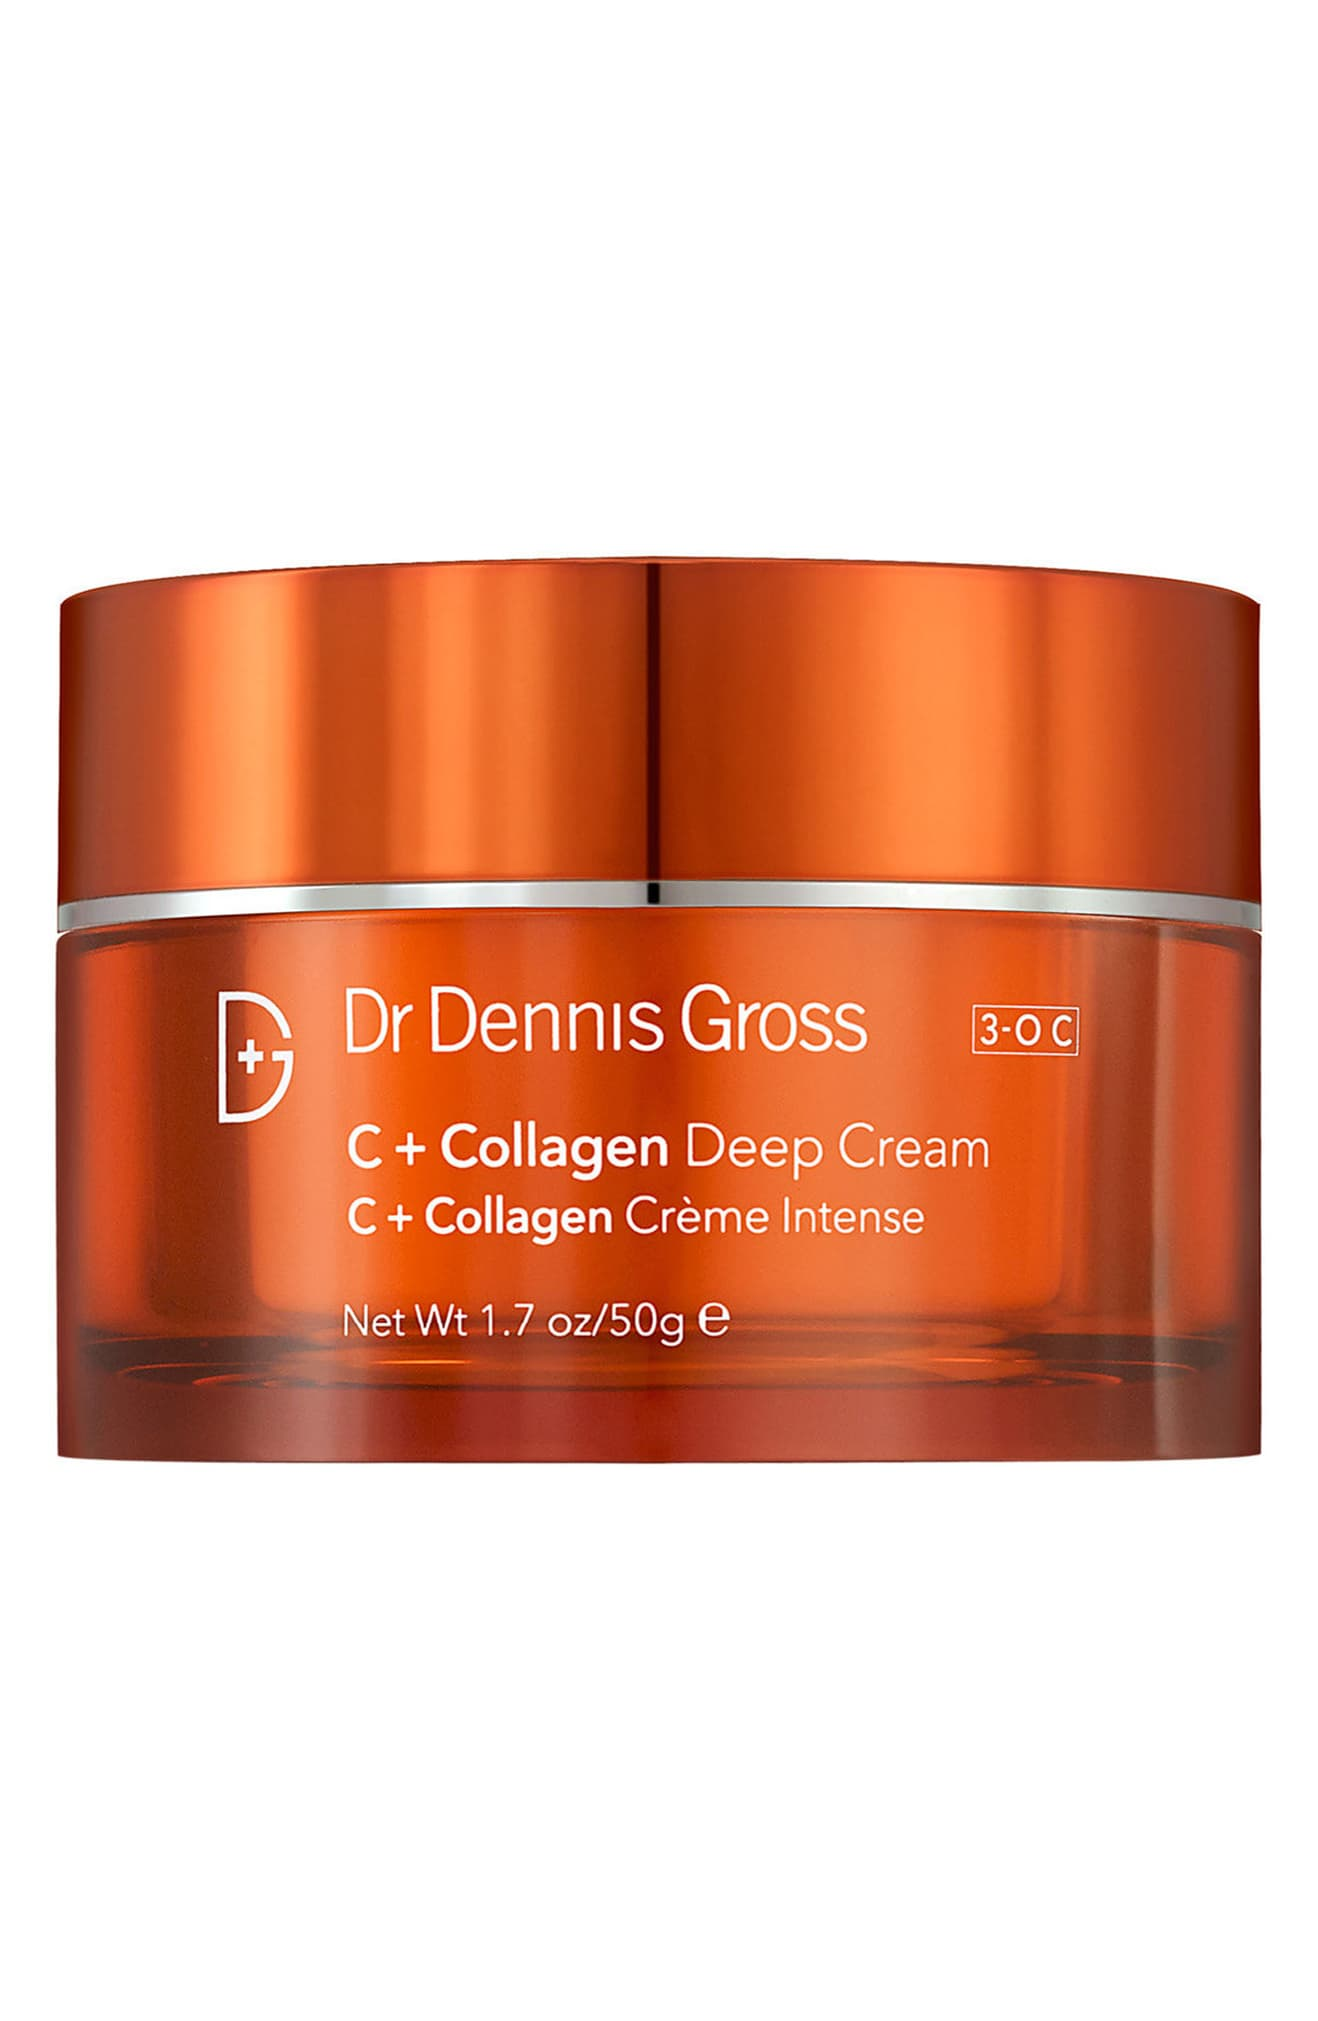 DR. DENNIS GROSS Skincare C + Collagen Deep Cream